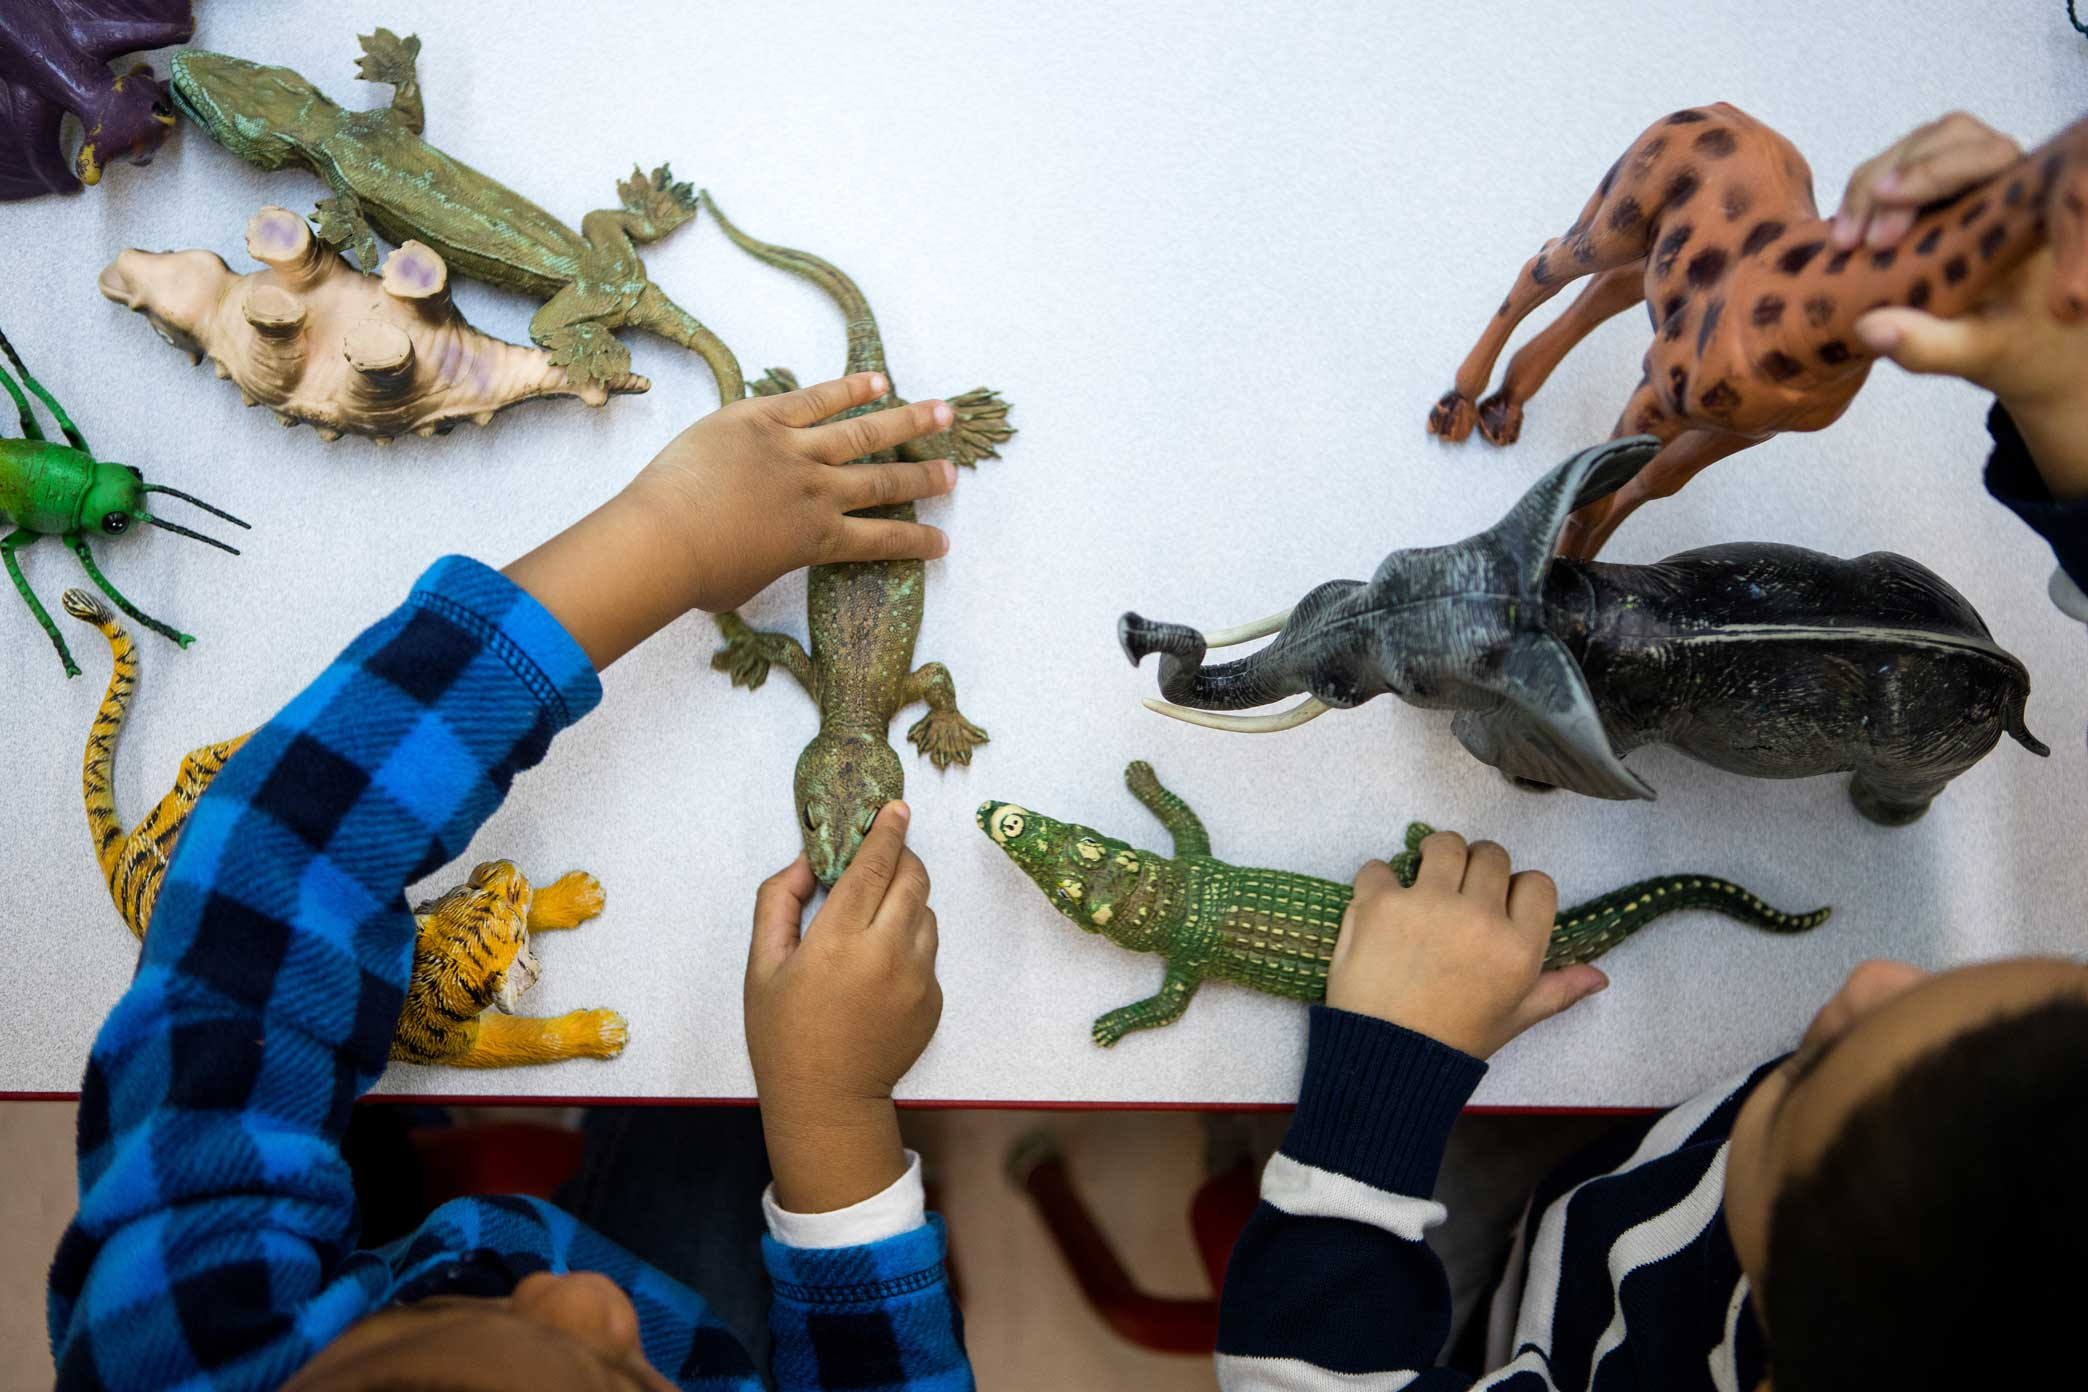 Students learning about animals in an EarlyLearn classroom at Union Settlement in Manhattan, New York.